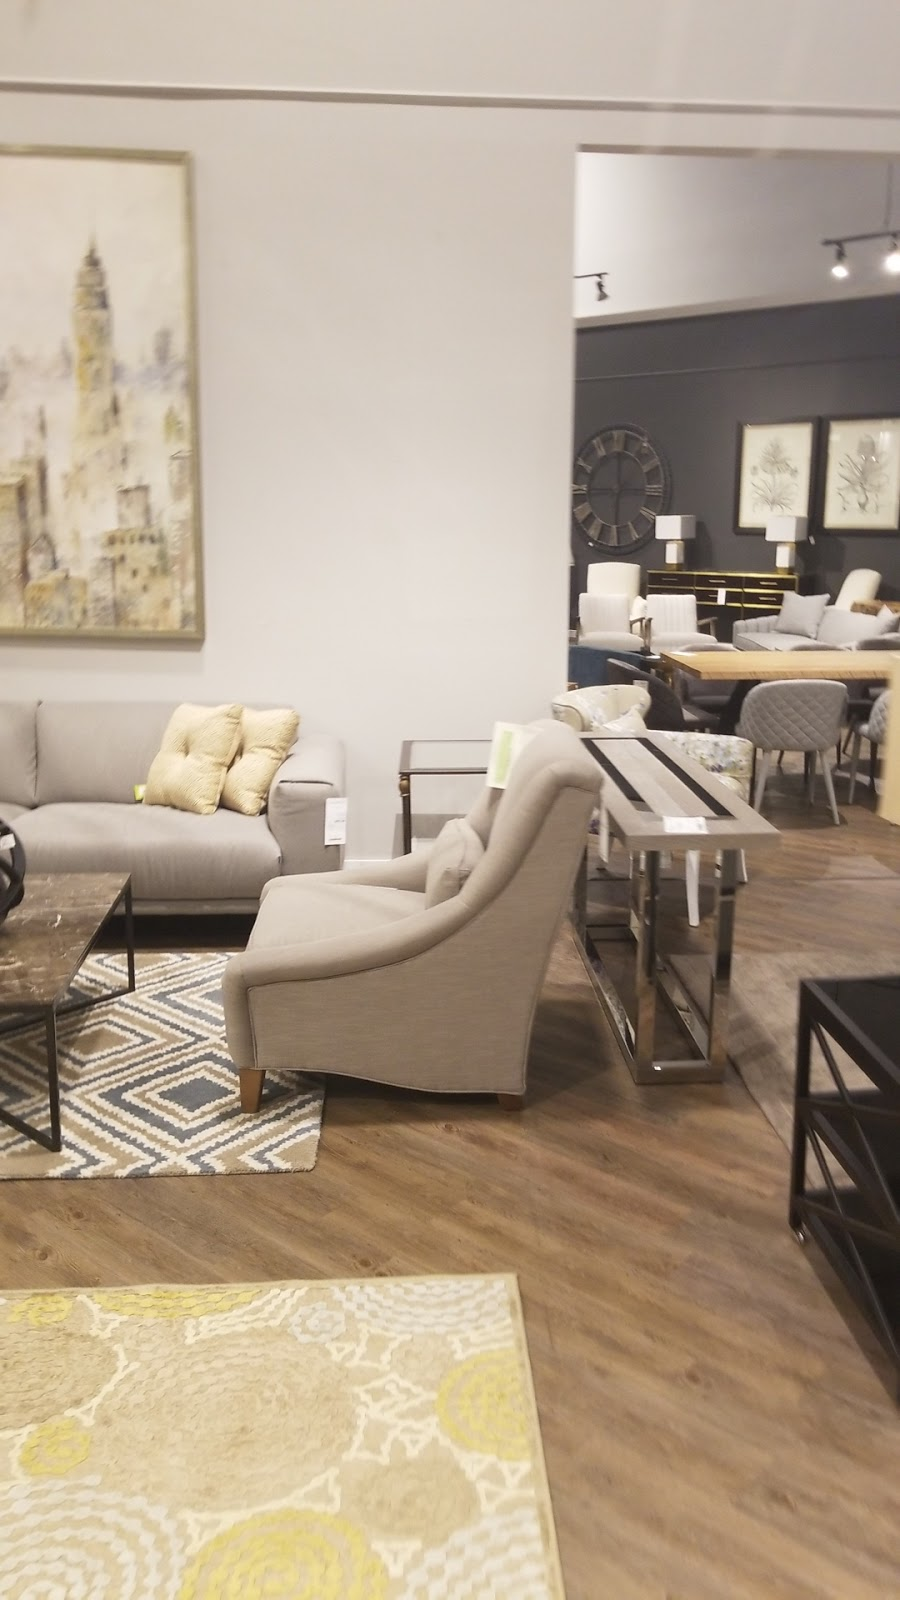 Ashley HomeStore | furniture store | 60 Highfield Park Dr, Dartmouth, NS B3A 4R9, Canada | 9024507007 OR +1 902-450-7007